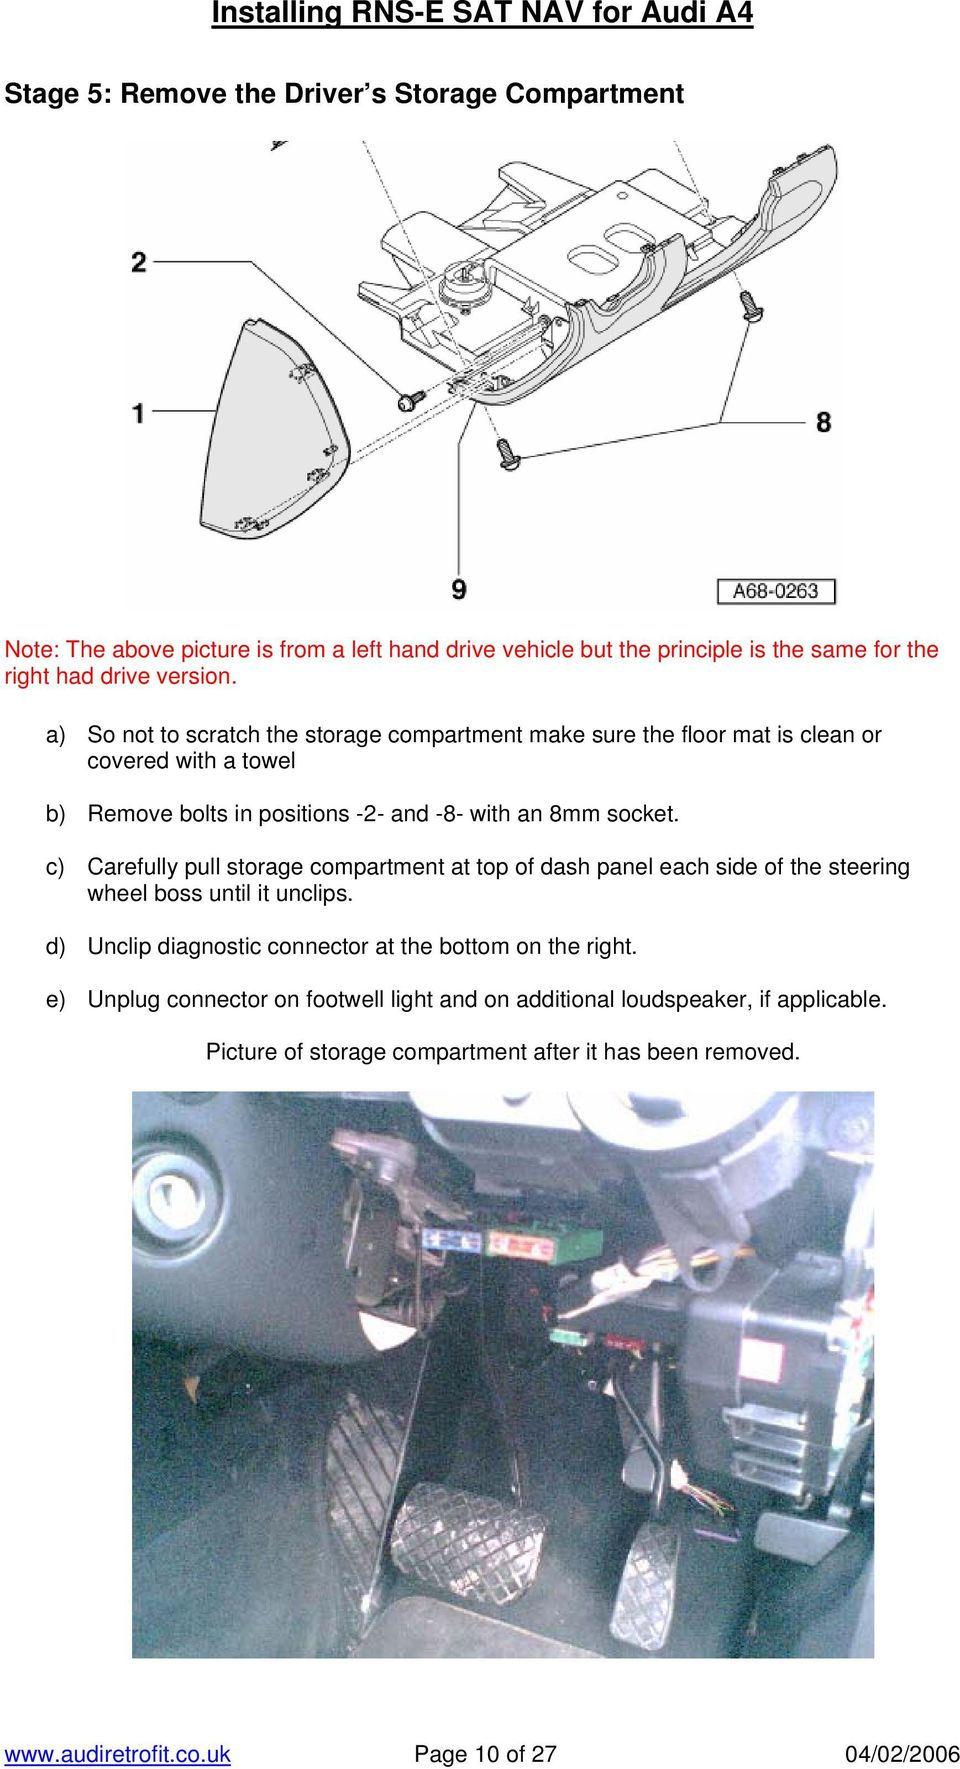 hight resolution of c carefully pull storage compartment at top of dash panel each side of the steering